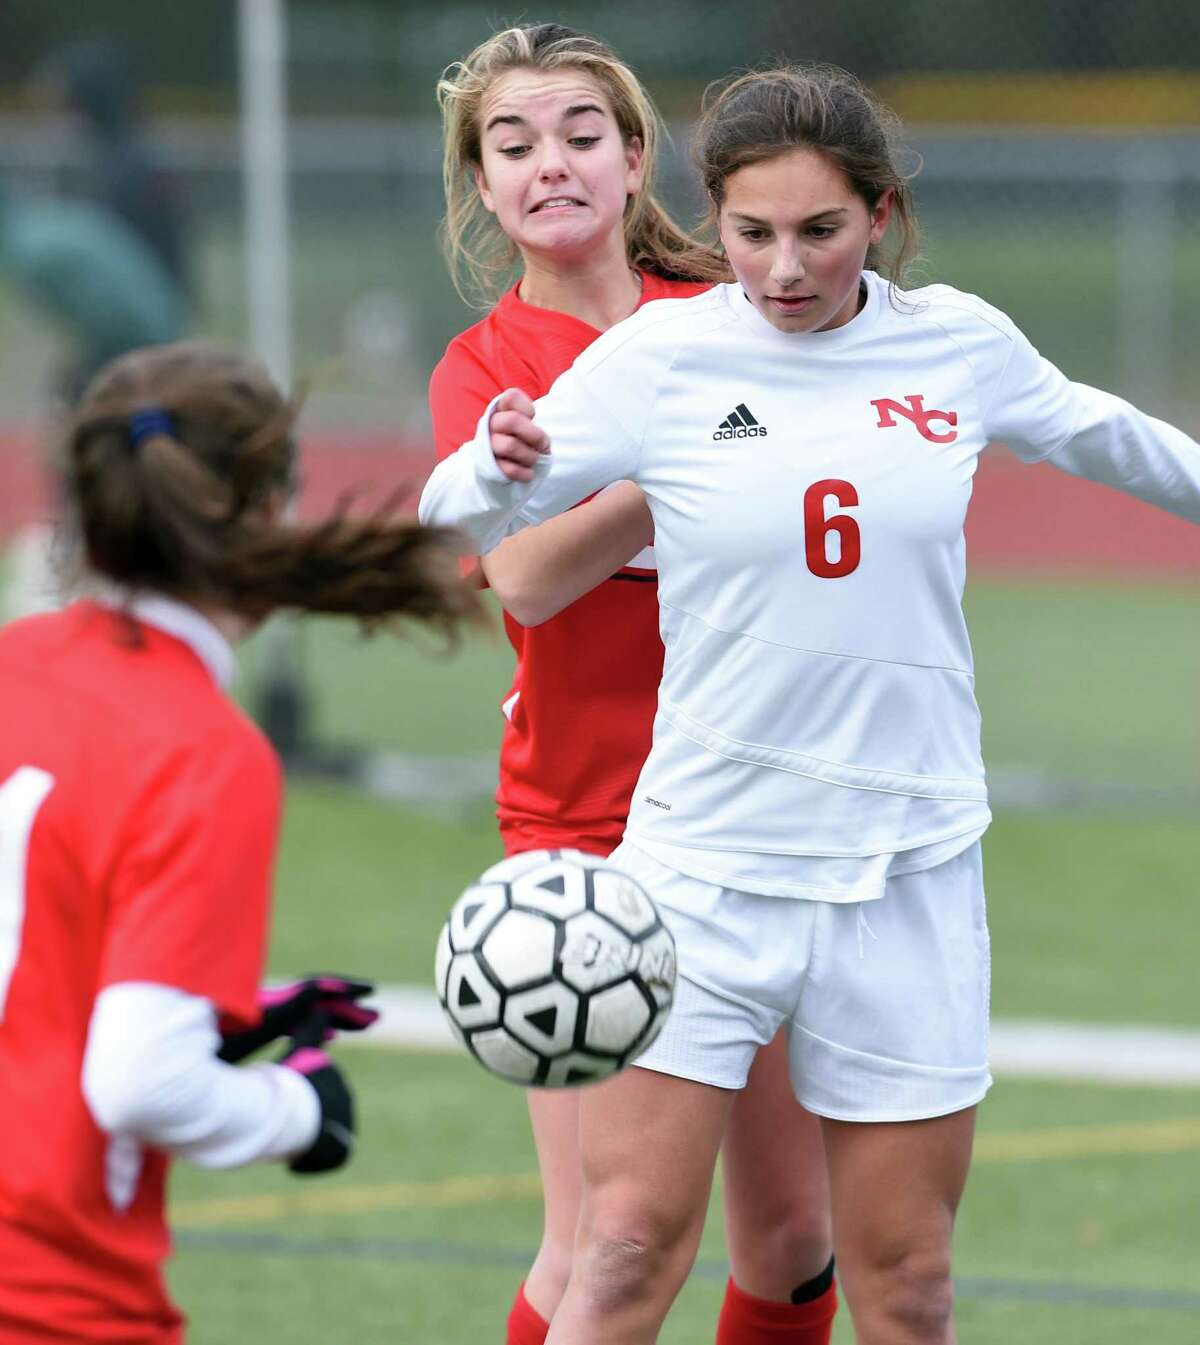 Isabel Dziura (left) of Cheshire and Kaleigh Harden of New Canaan fight for the ball on November 14, 2019 in a Class LL tournament game in Cheshire.